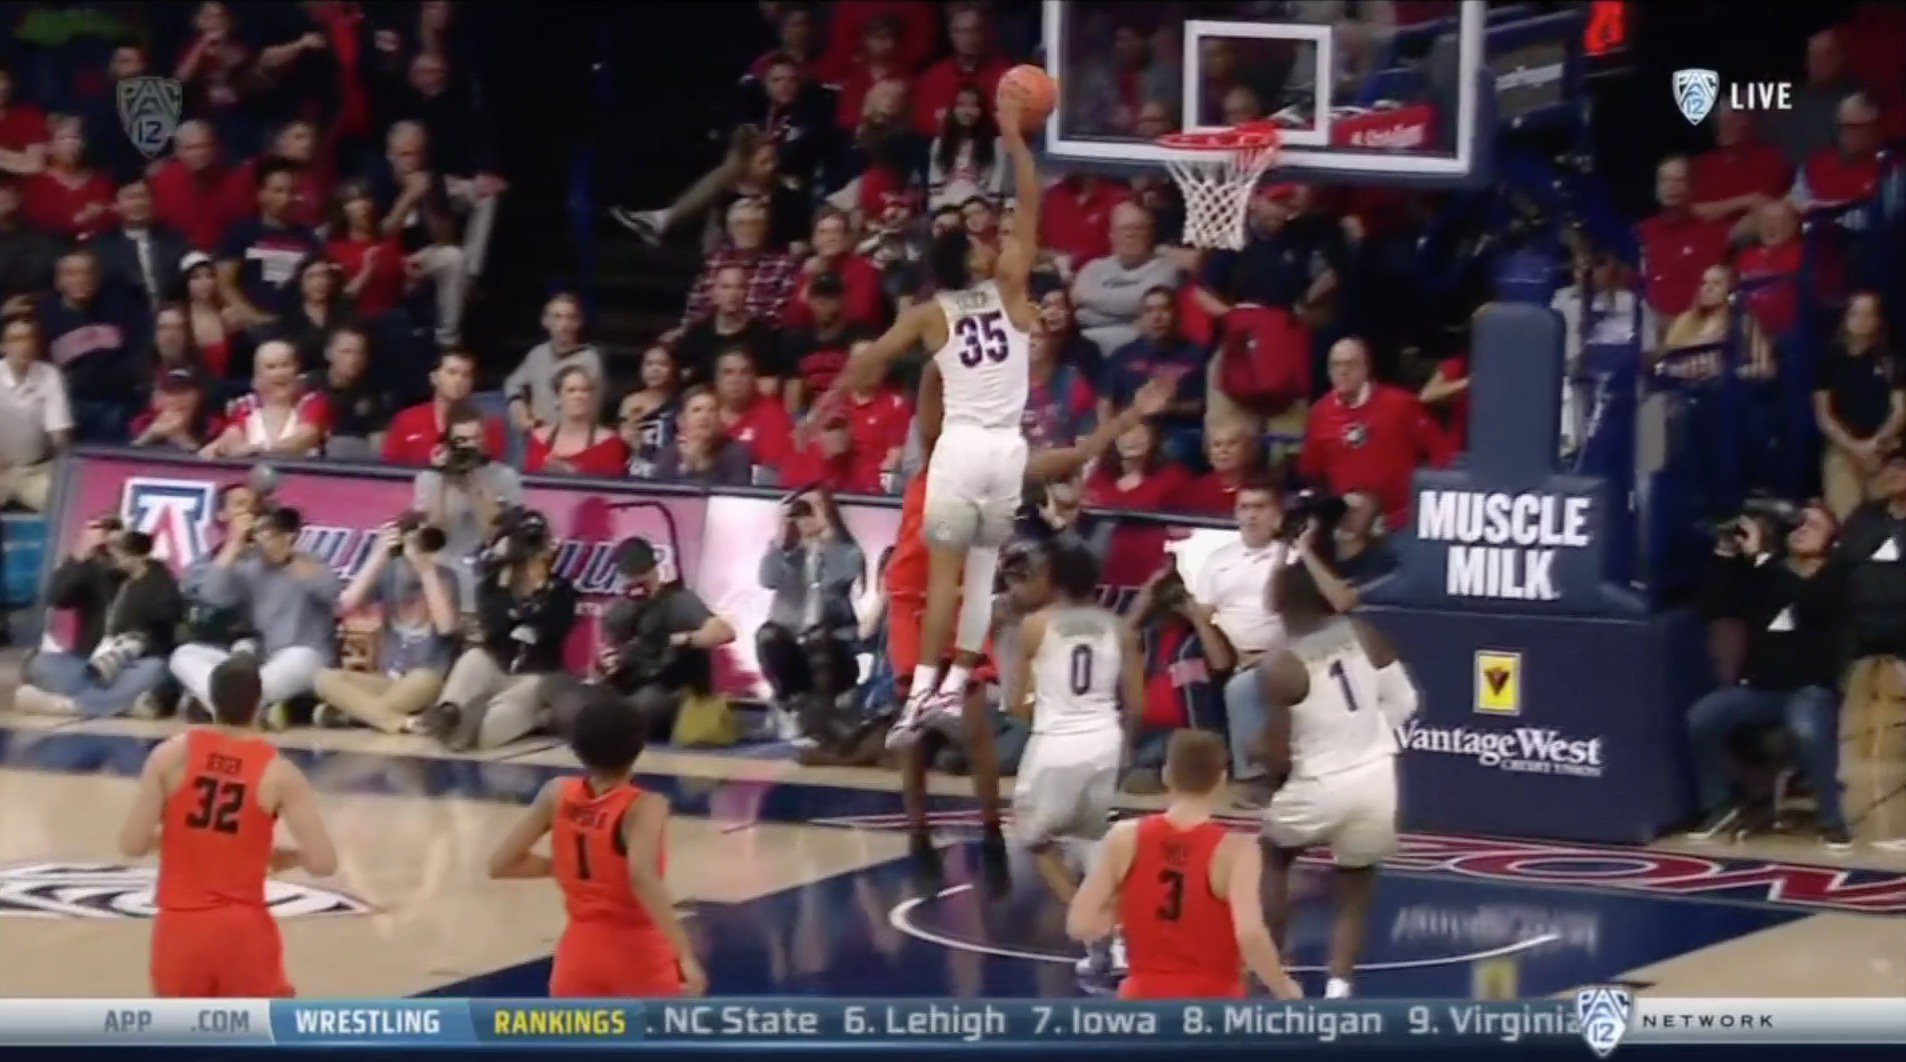 Arizona got the arena rocking with a pair of wild dunks within a minute of each other �� https://t.co/8B2pIVbpDY